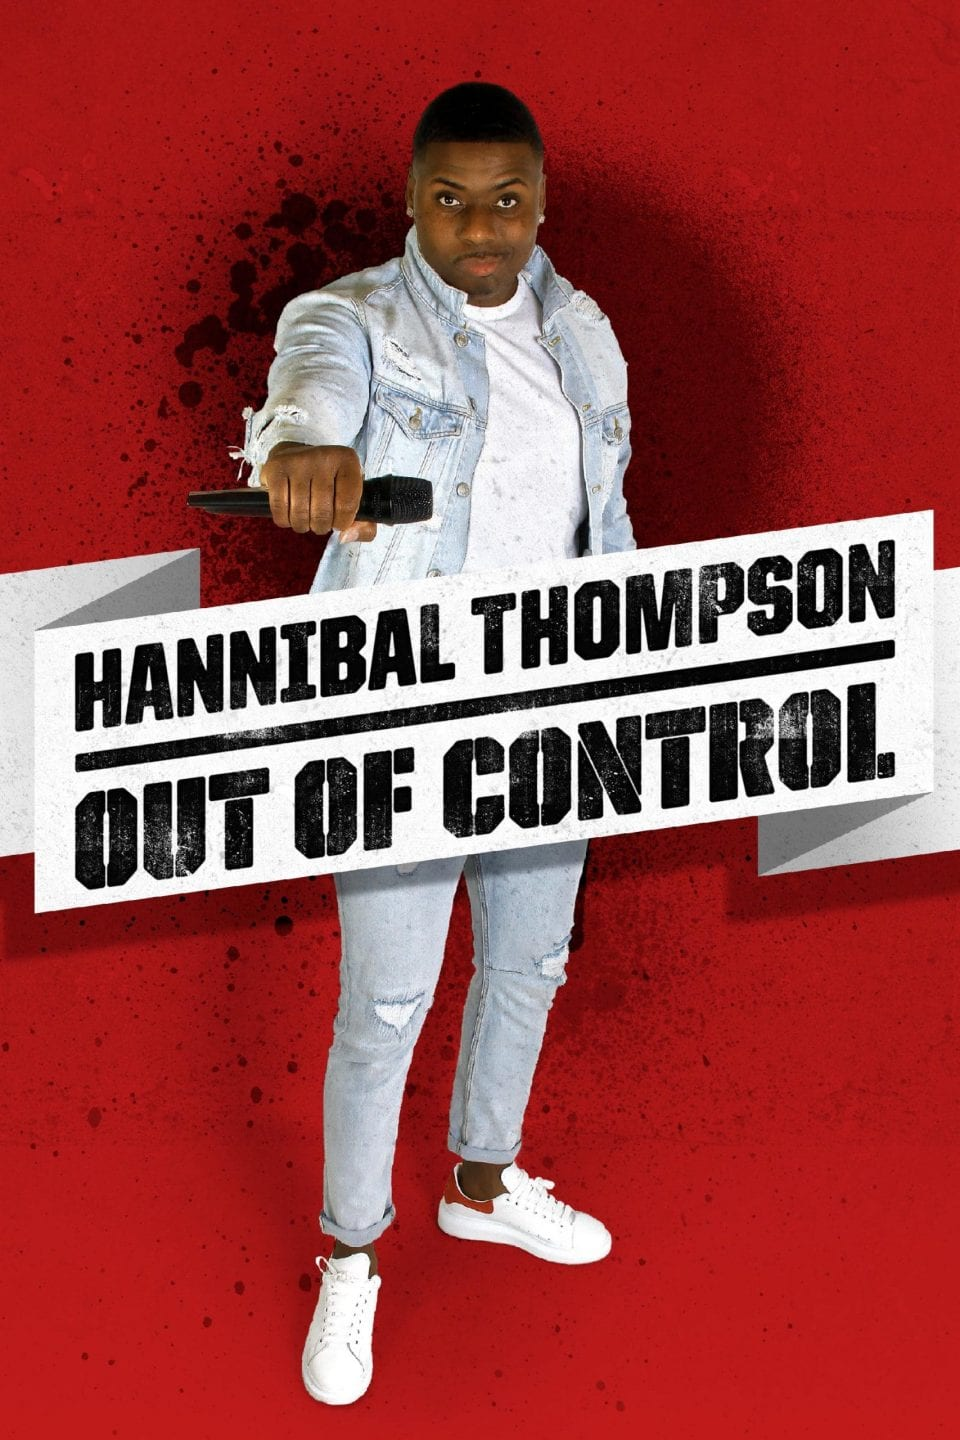 Hannibal Thompson Out Of Control